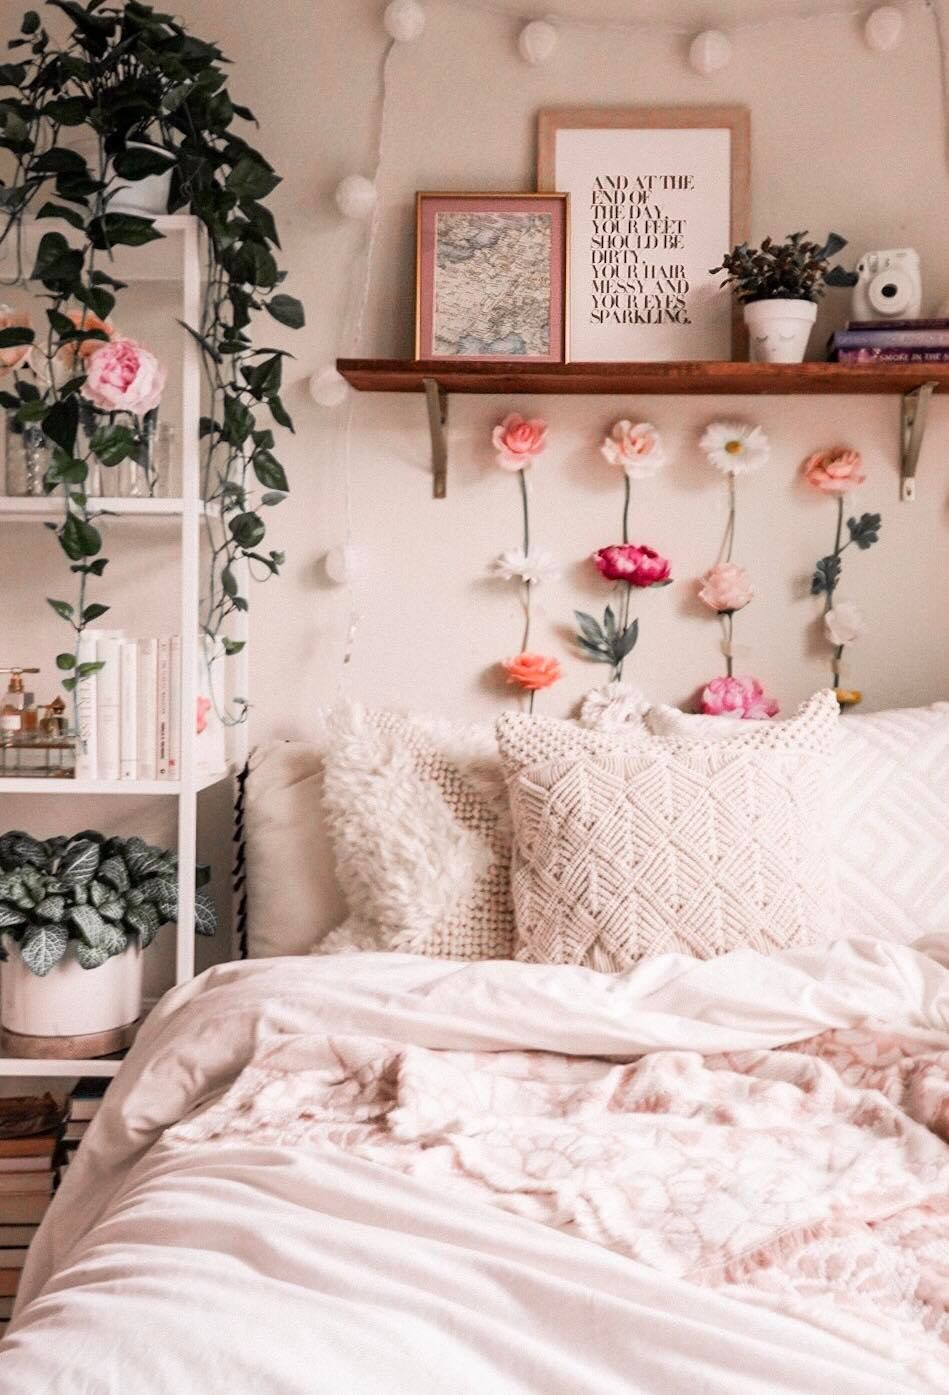 Refreshing Small Spaces As Told By Michelle In 2020 Dorm Room